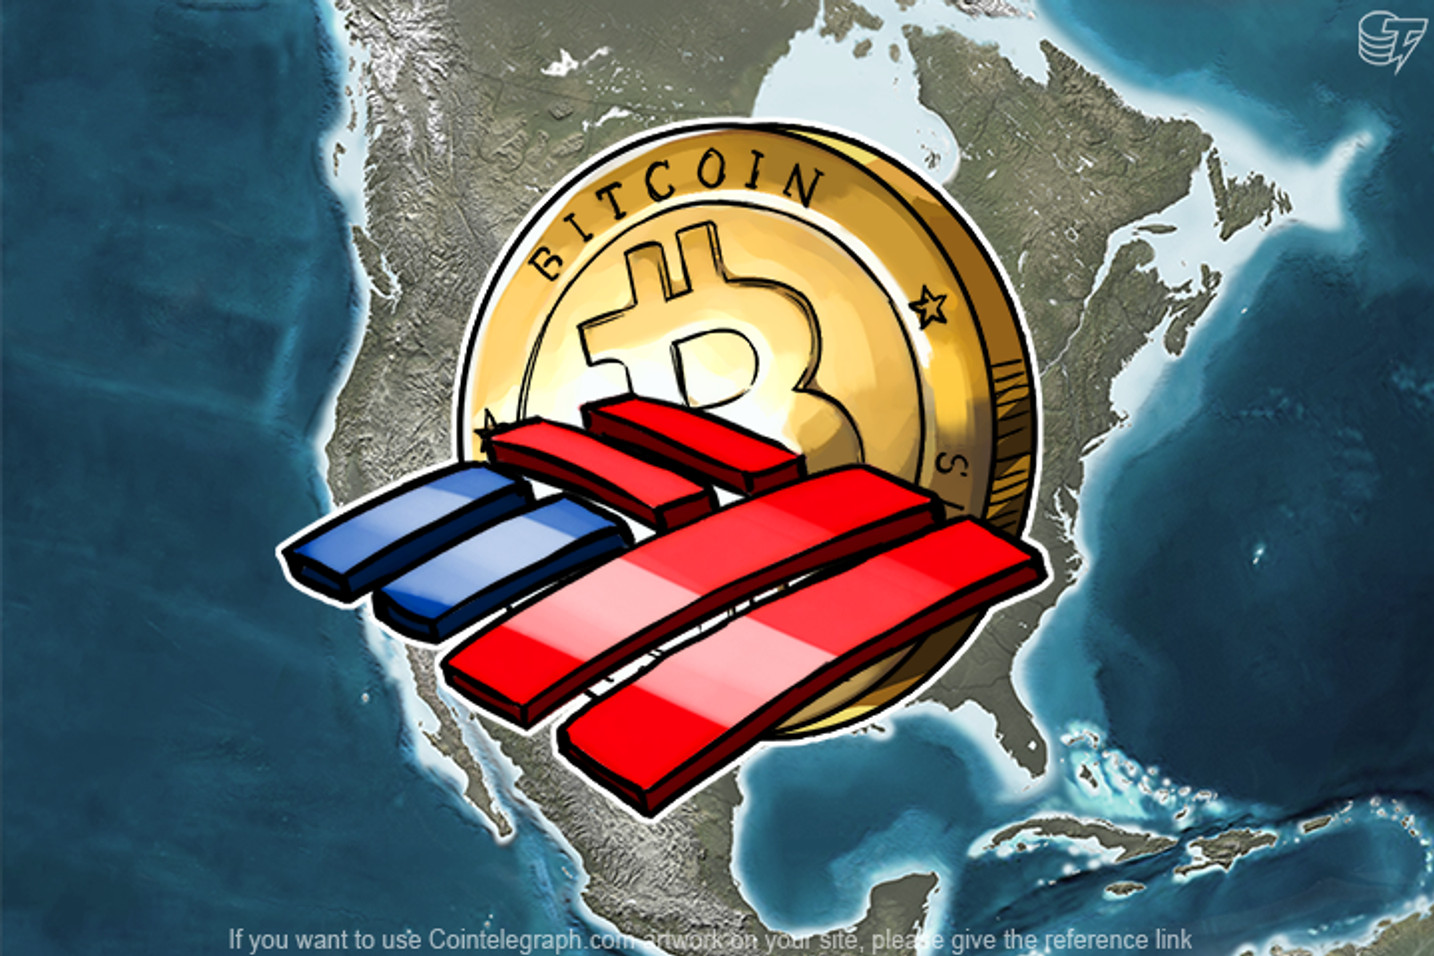 Is Bank of America Trying To Monopolize The Blockchain?